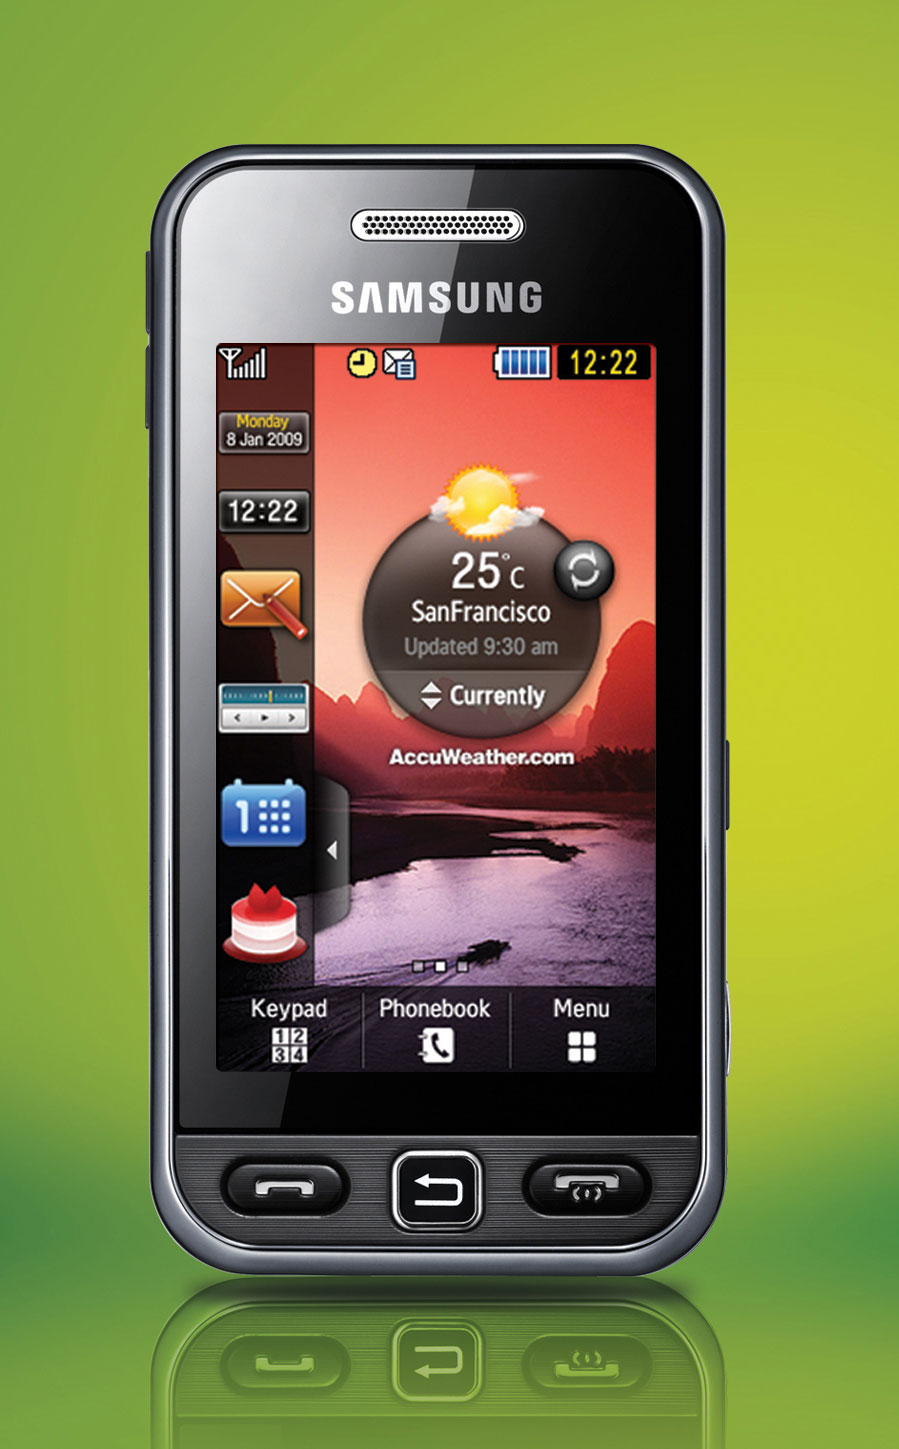 samsung touch screen star the latest mobile phones. Black Bedroom Furniture Sets. Home Design Ideas